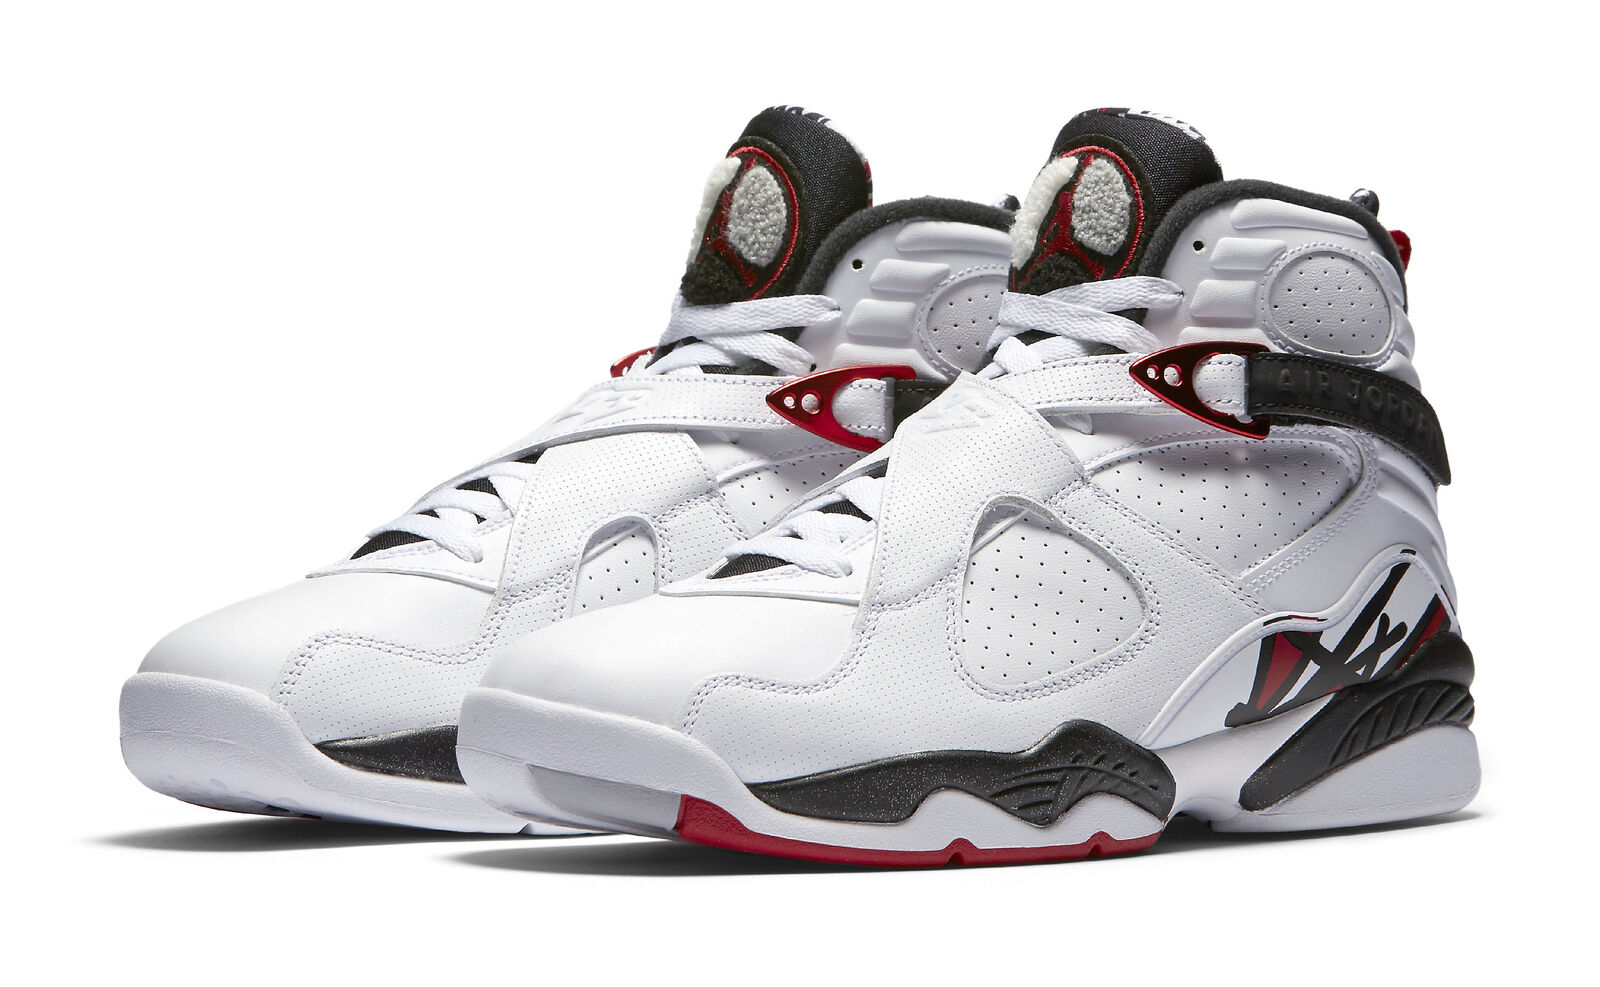 Air Jordan 8 Retro Bugs Bunny Sz 3y The most popular shoes for men and women